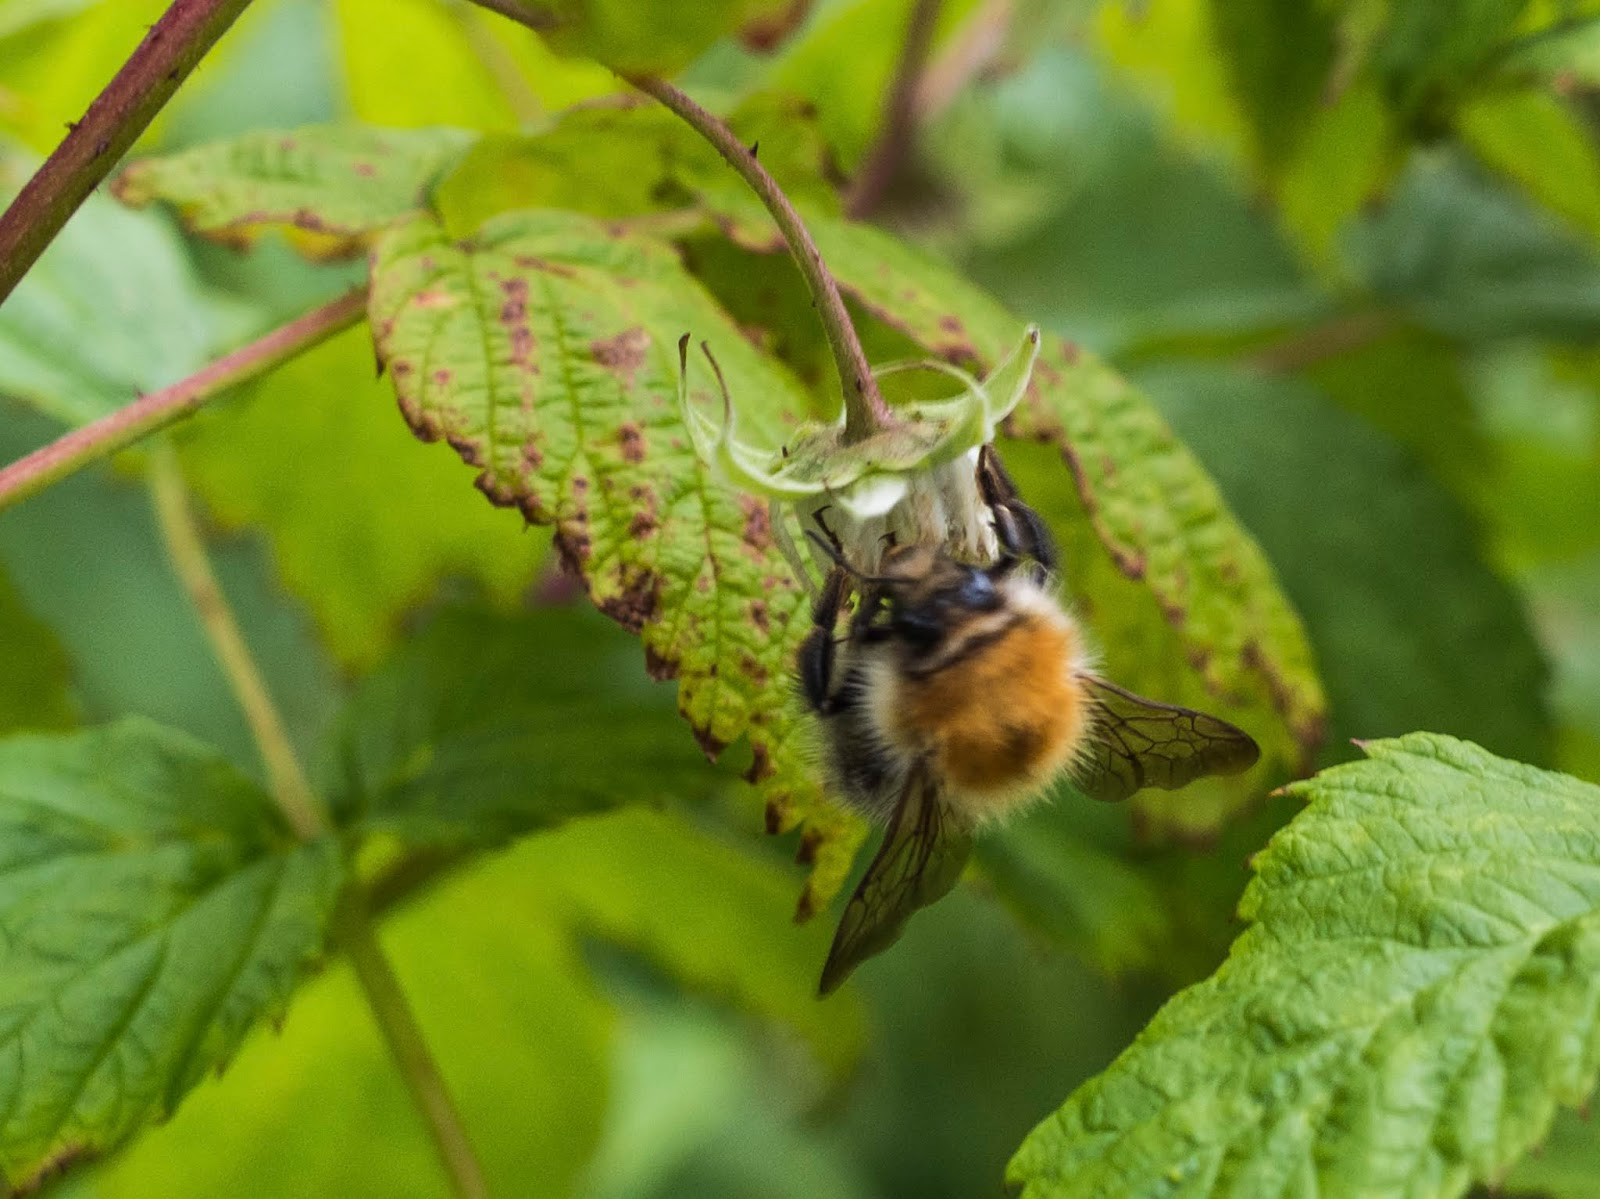 A bumble bee fertilising a raspberry.